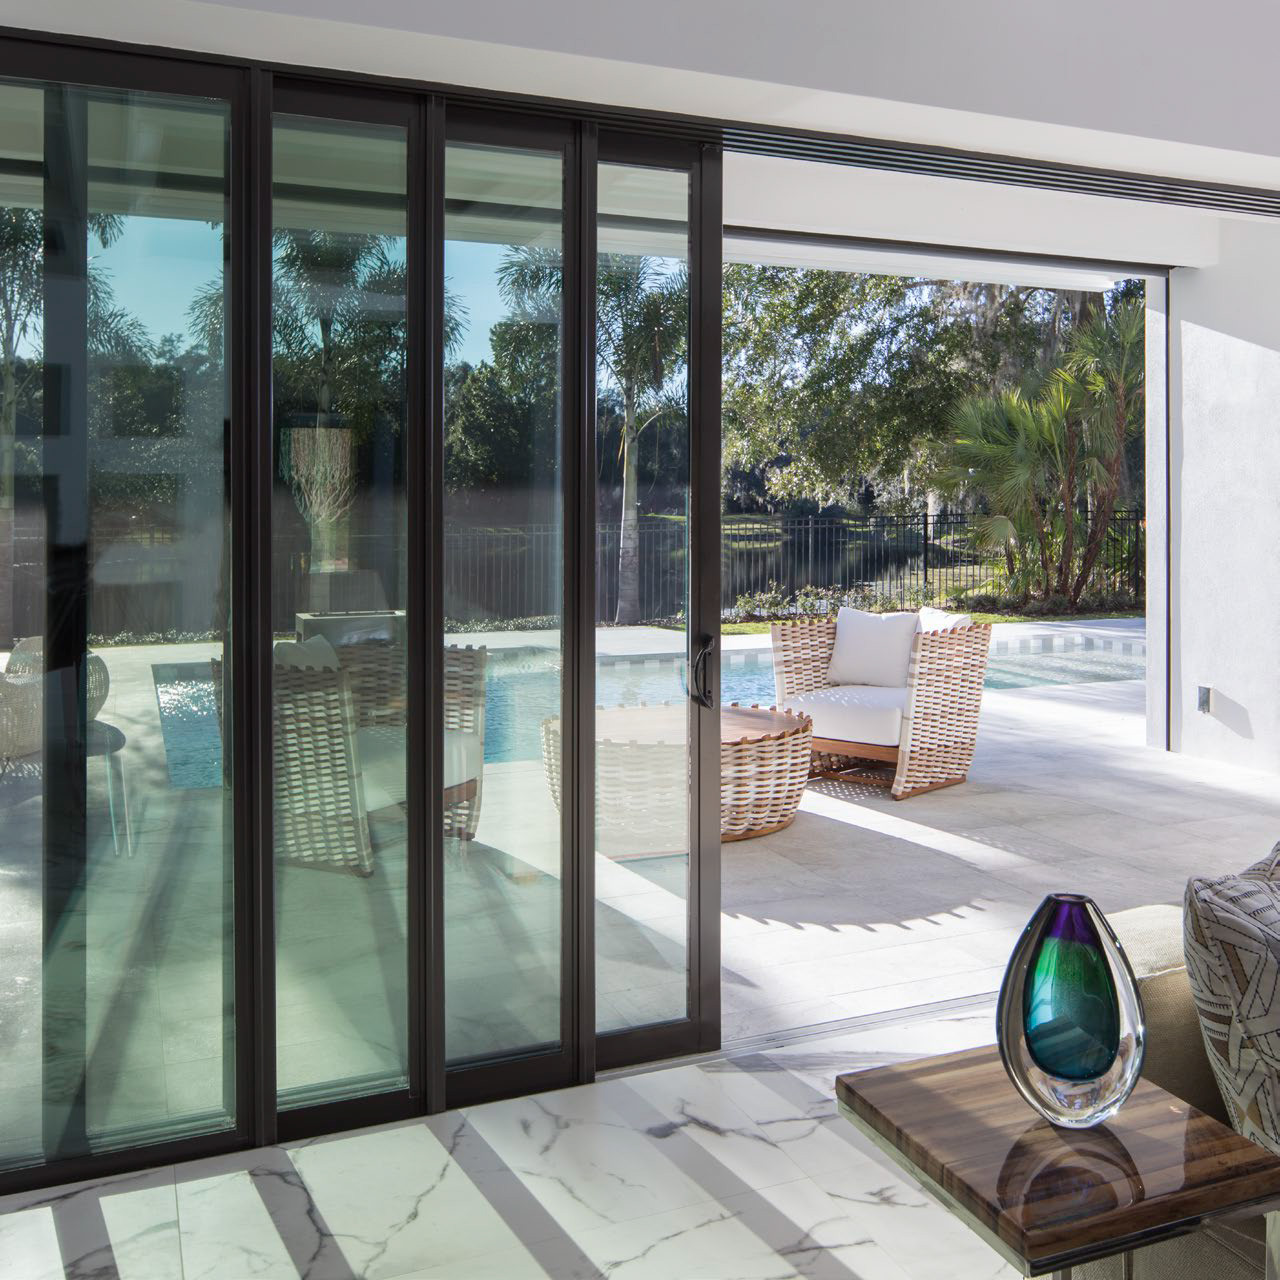 Best ideas about Patio Doors Sliding . Save or Pin 4880 Pocket Sliding Patio Door Now.